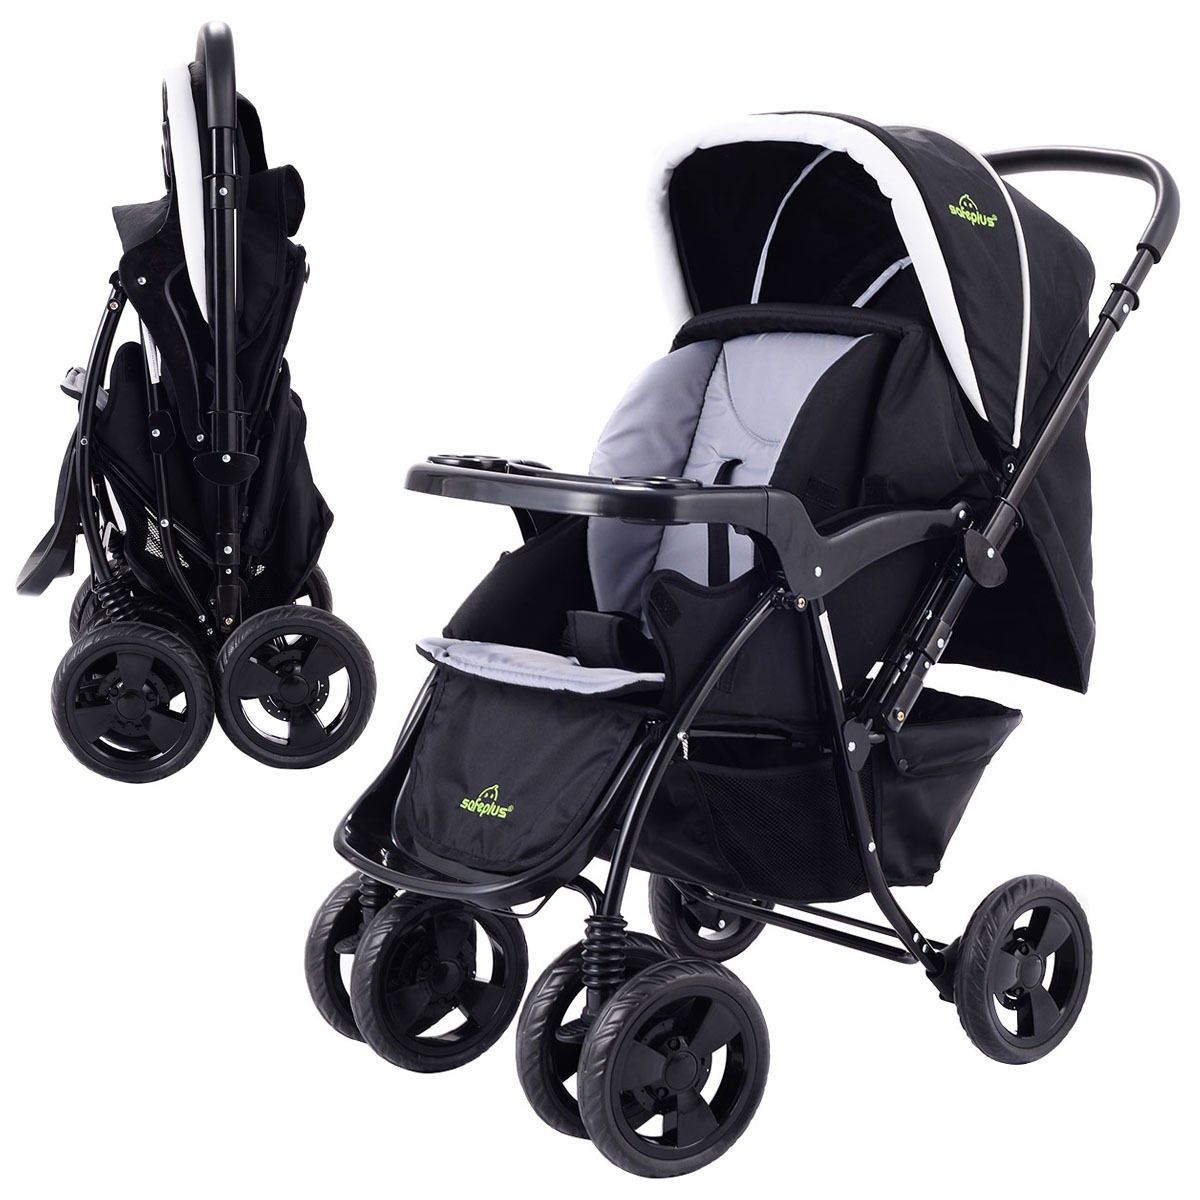 New Two Way Foldable Baby Kids Travel Stroller Newborn